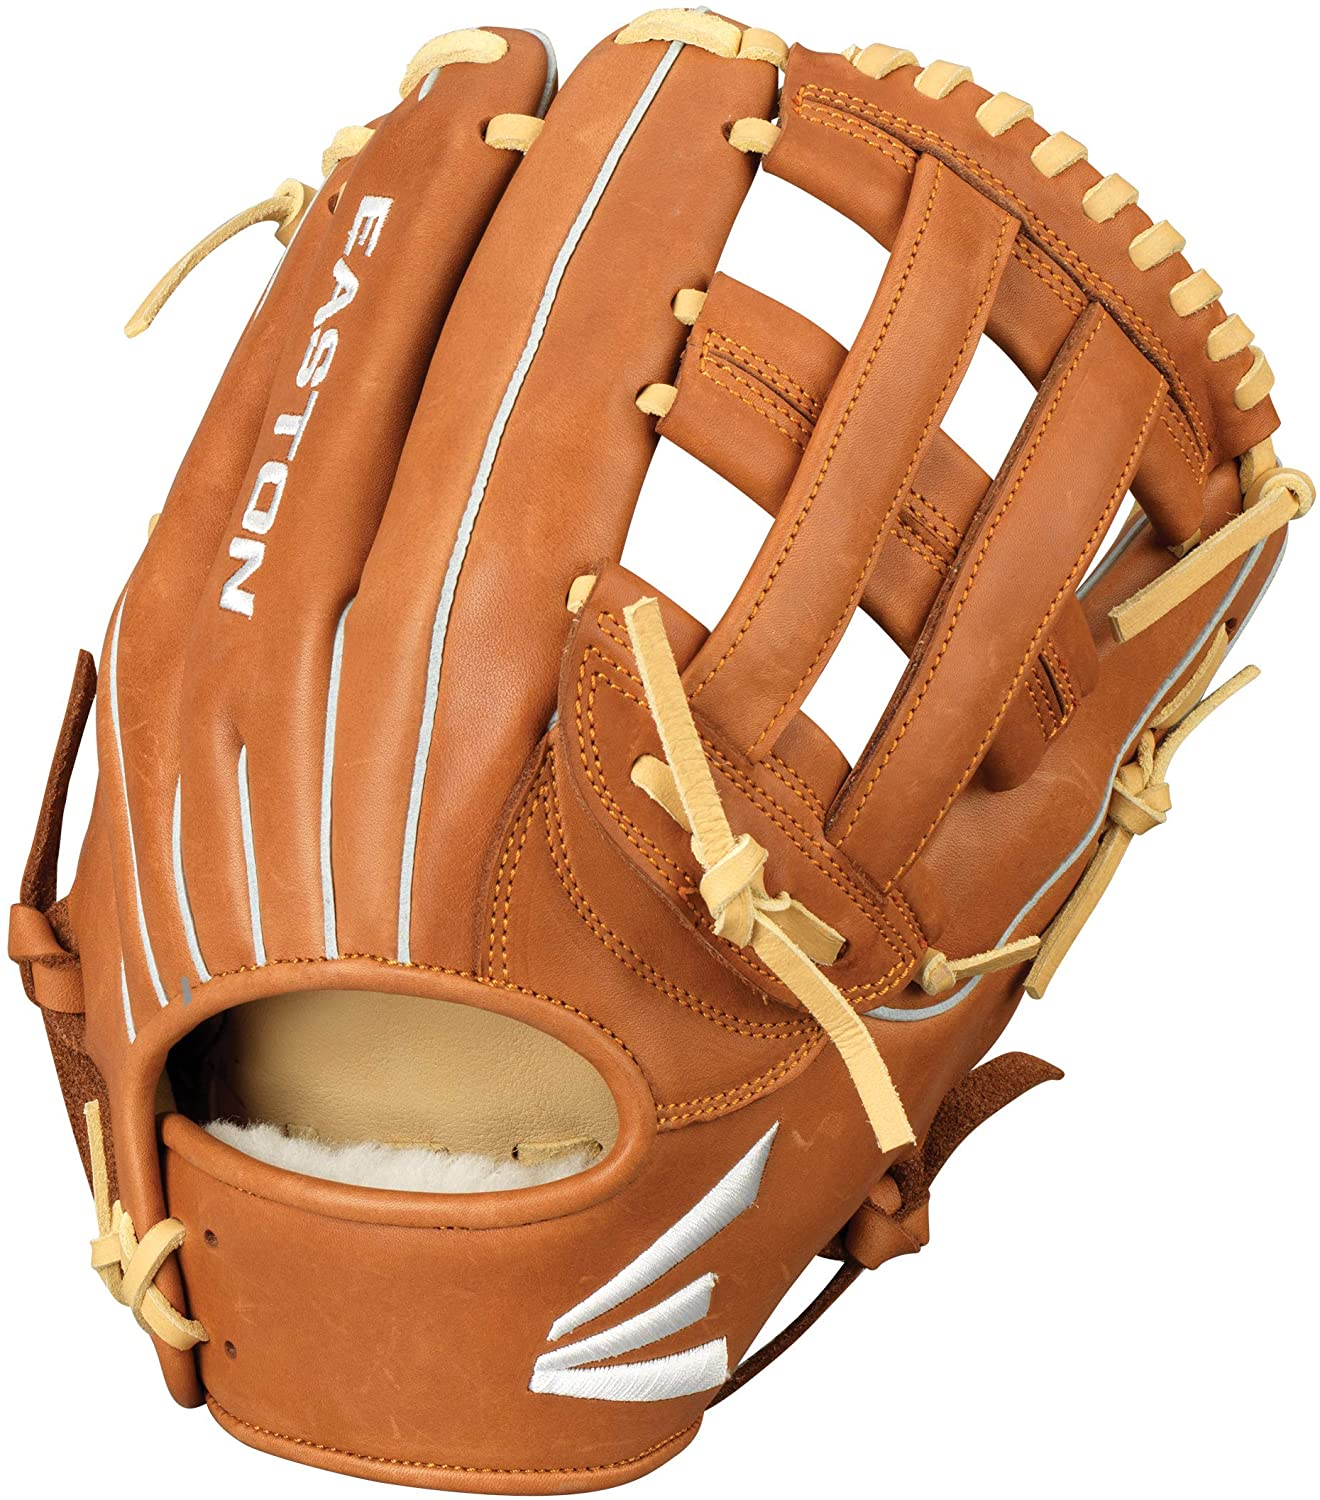 "Easton Flagship 11.75"" Baseball Glove"